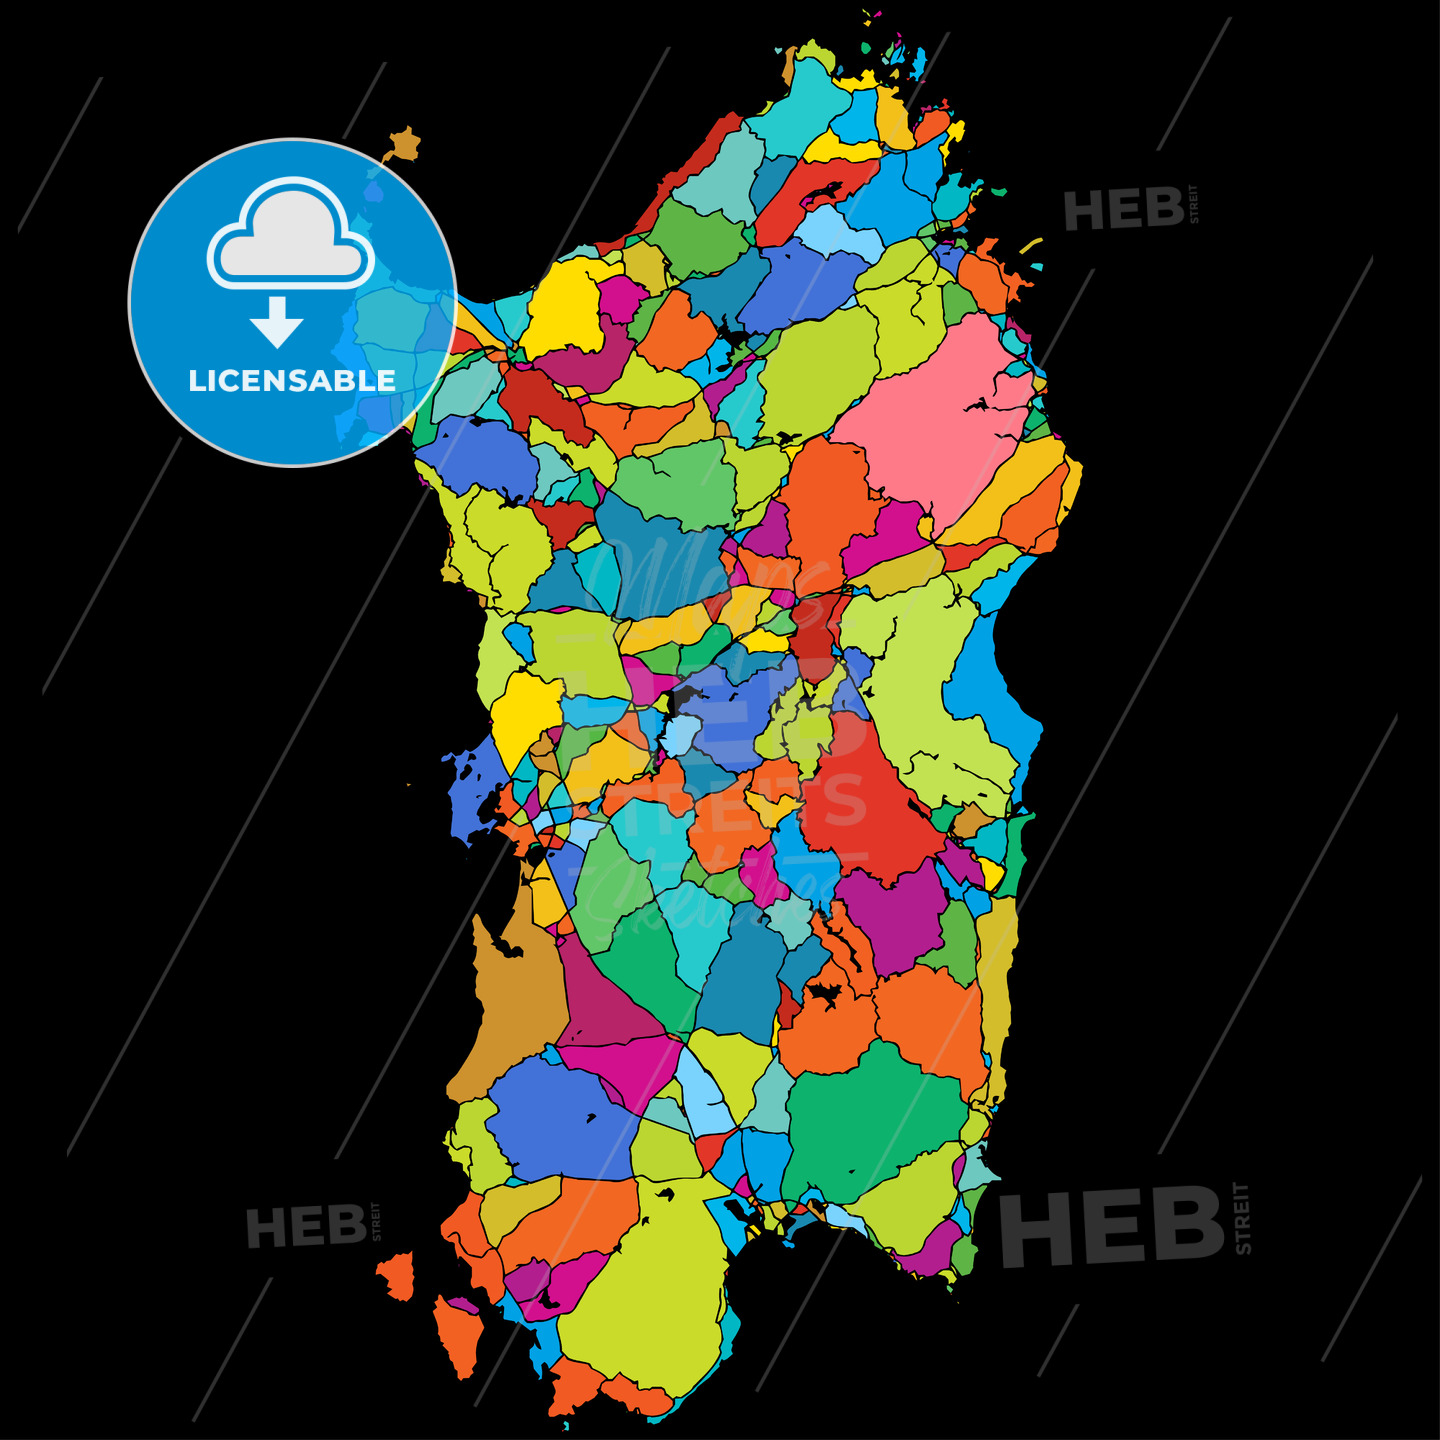 Sardinia, Island, Italy, Colorful Vector Map on Black - HEBSTREIT's Sketches